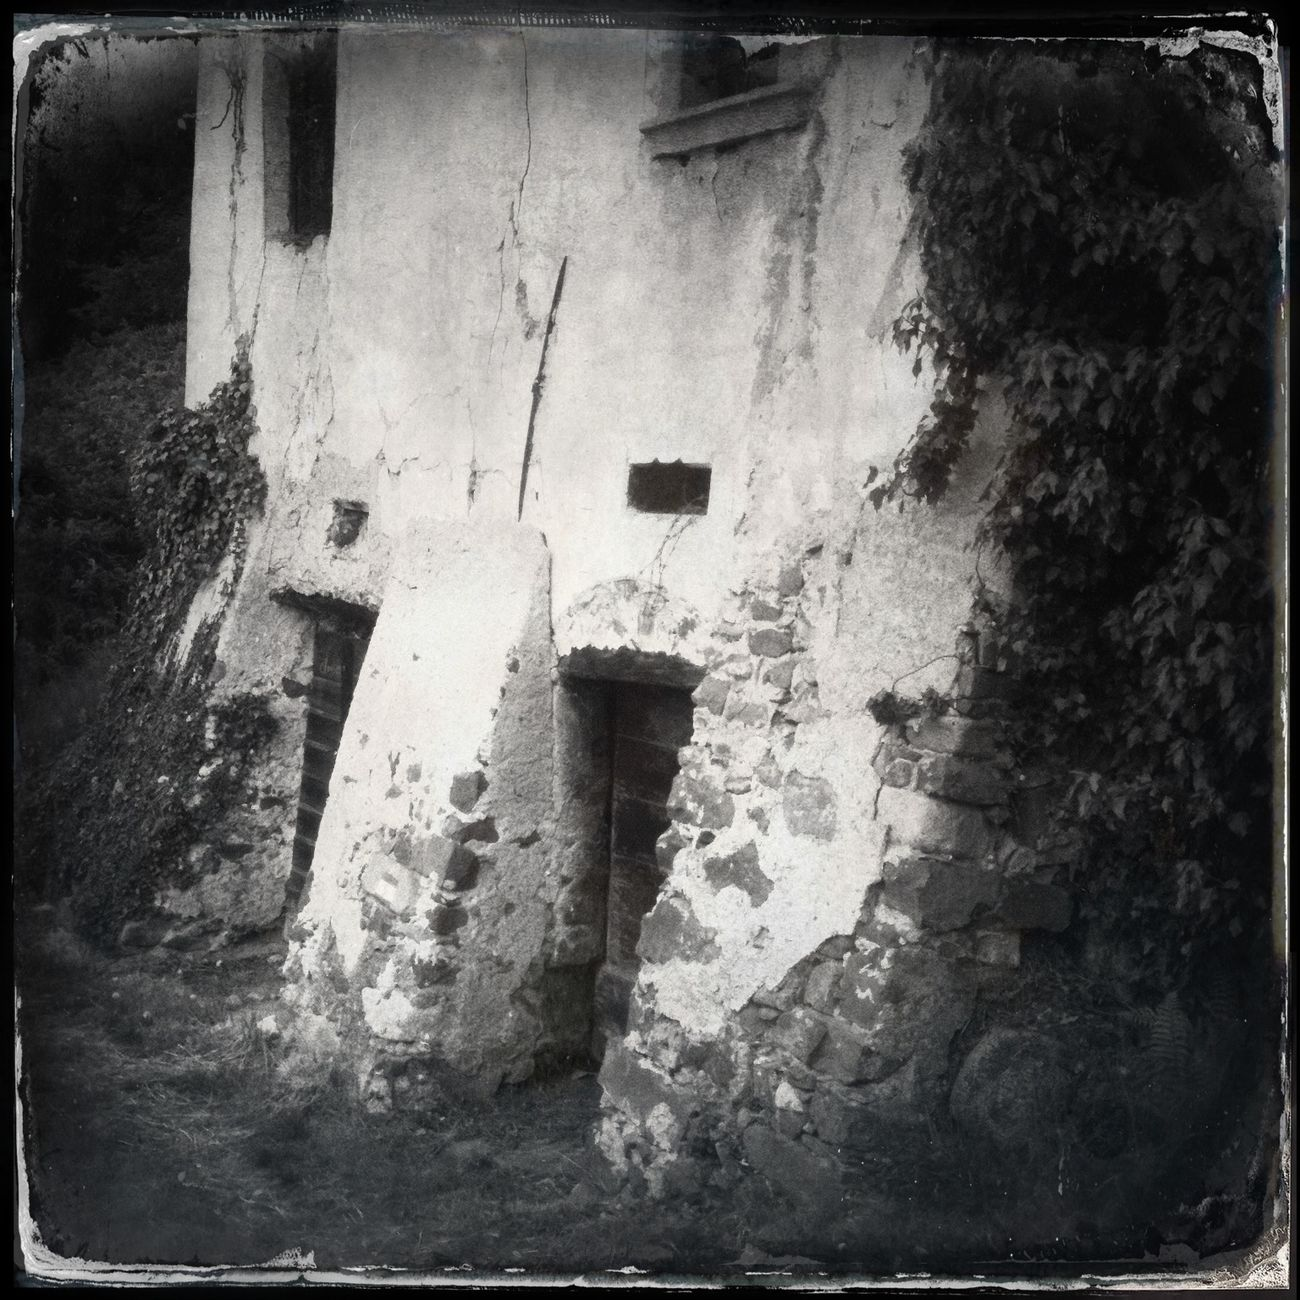 Abandoned house near the woods Hipstamatic Blackandwhite The_guido